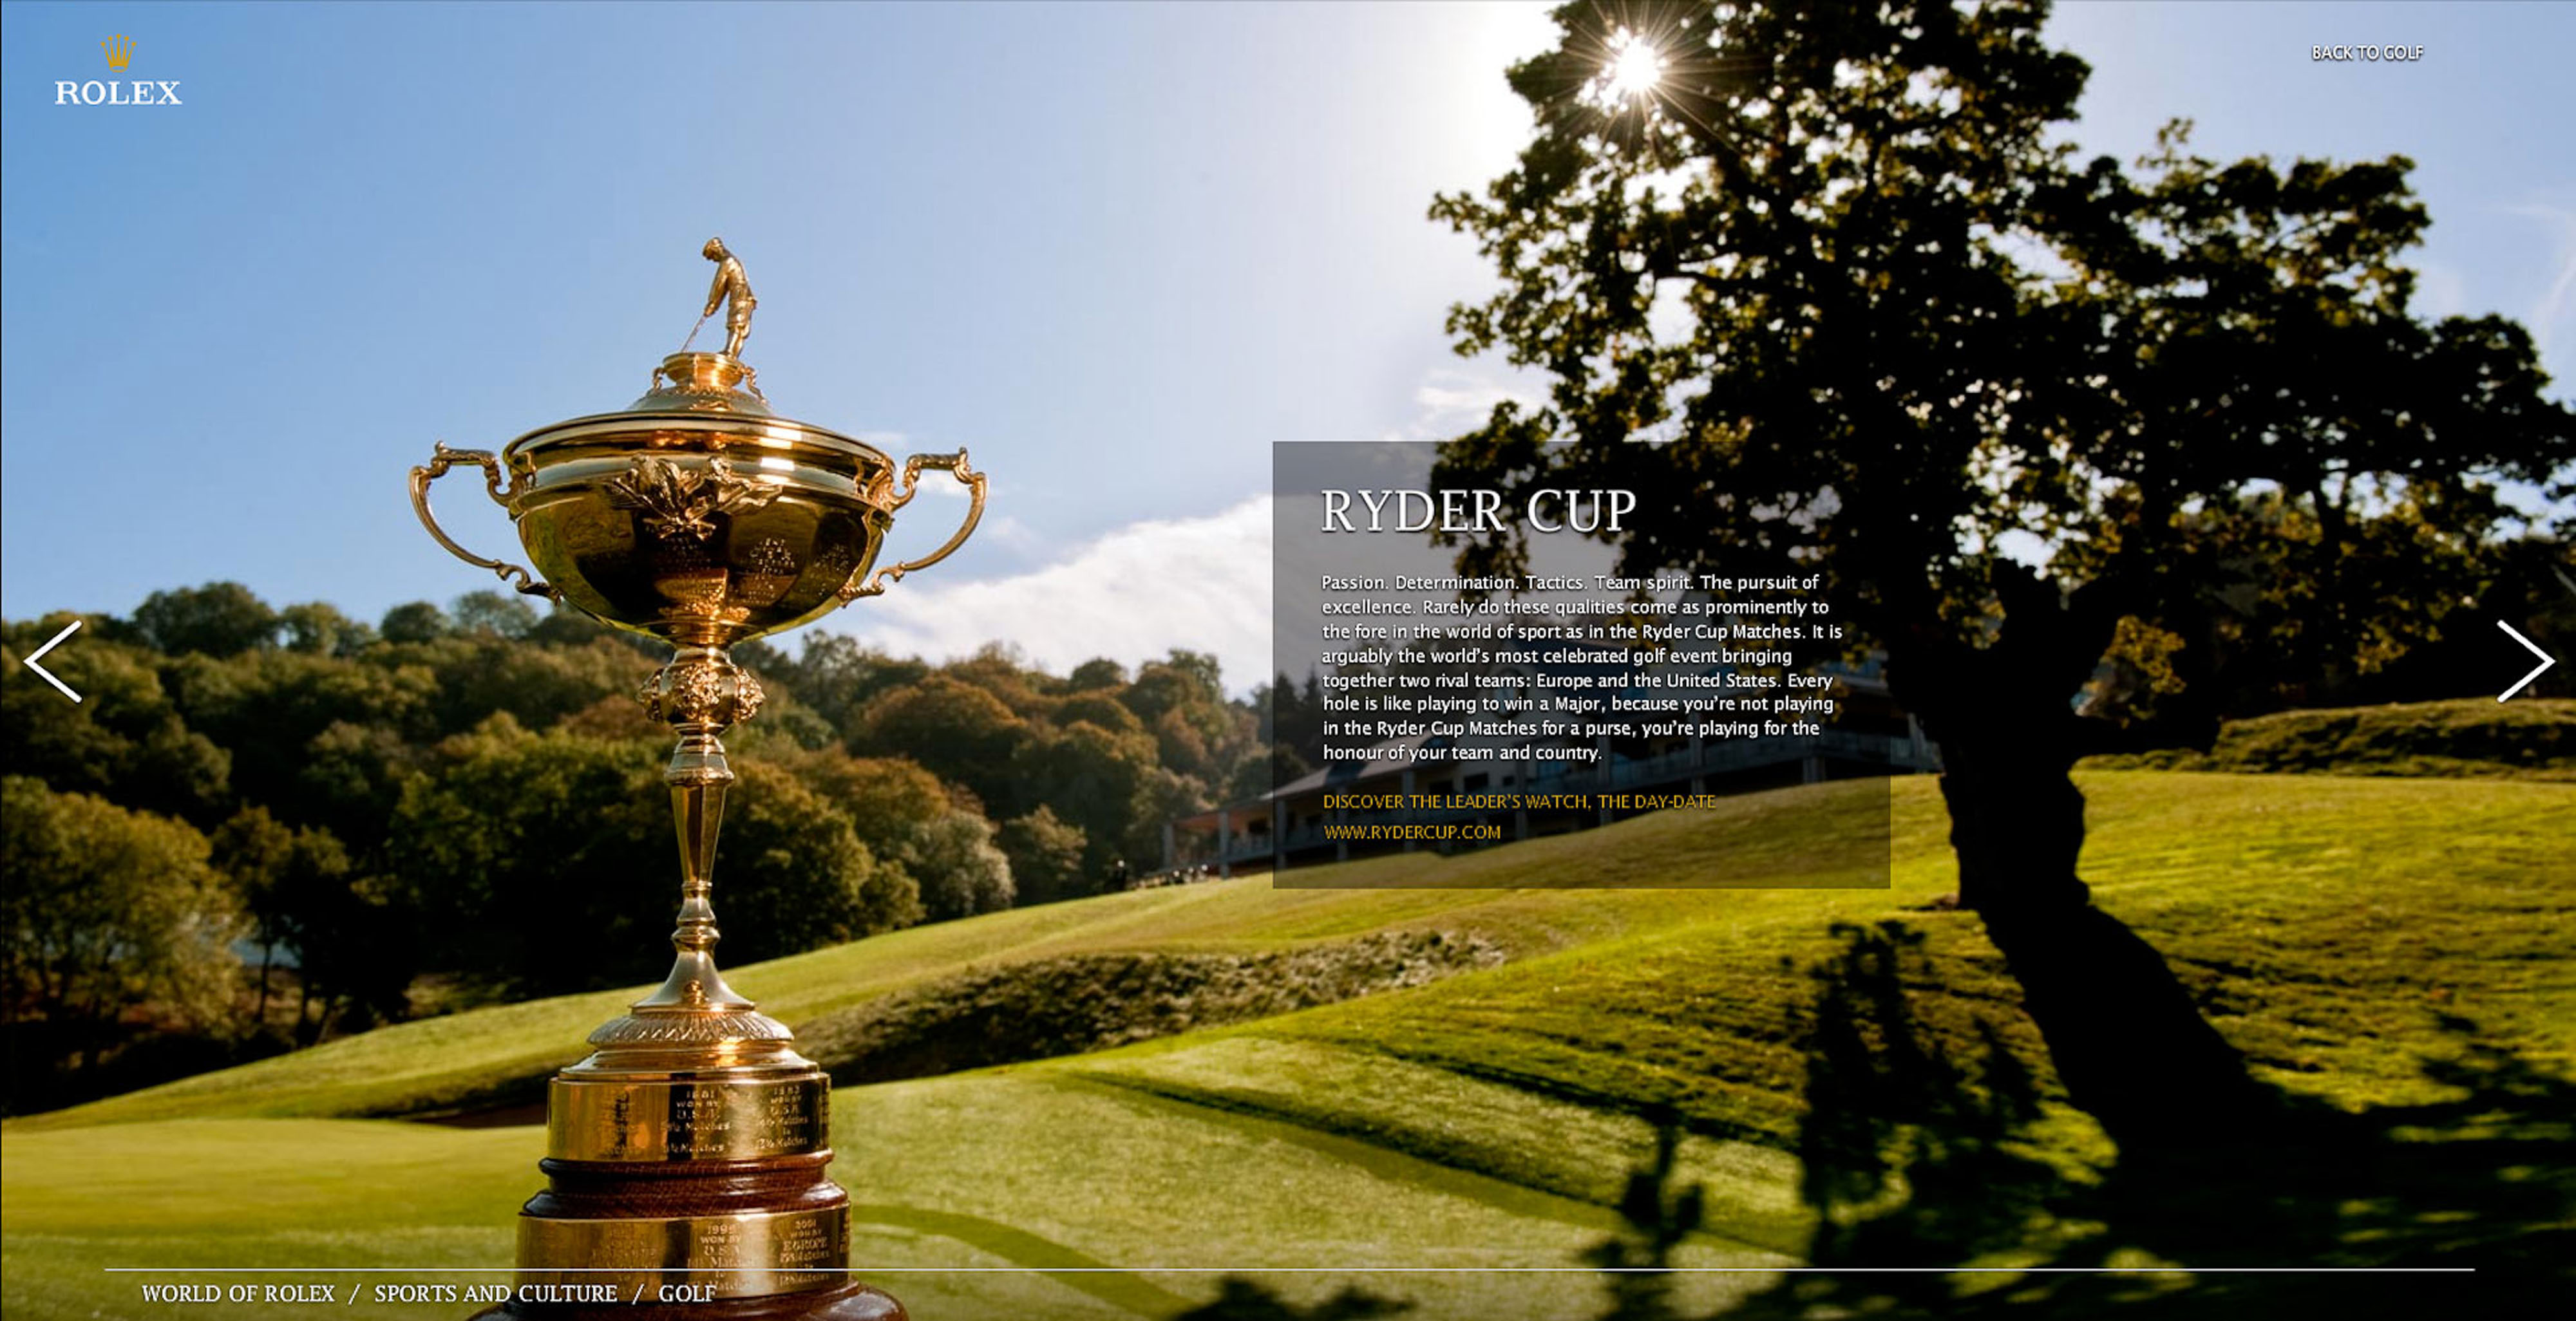 Sunrise with Golf Ryder Cup, Celtic Manor, Wales, UK